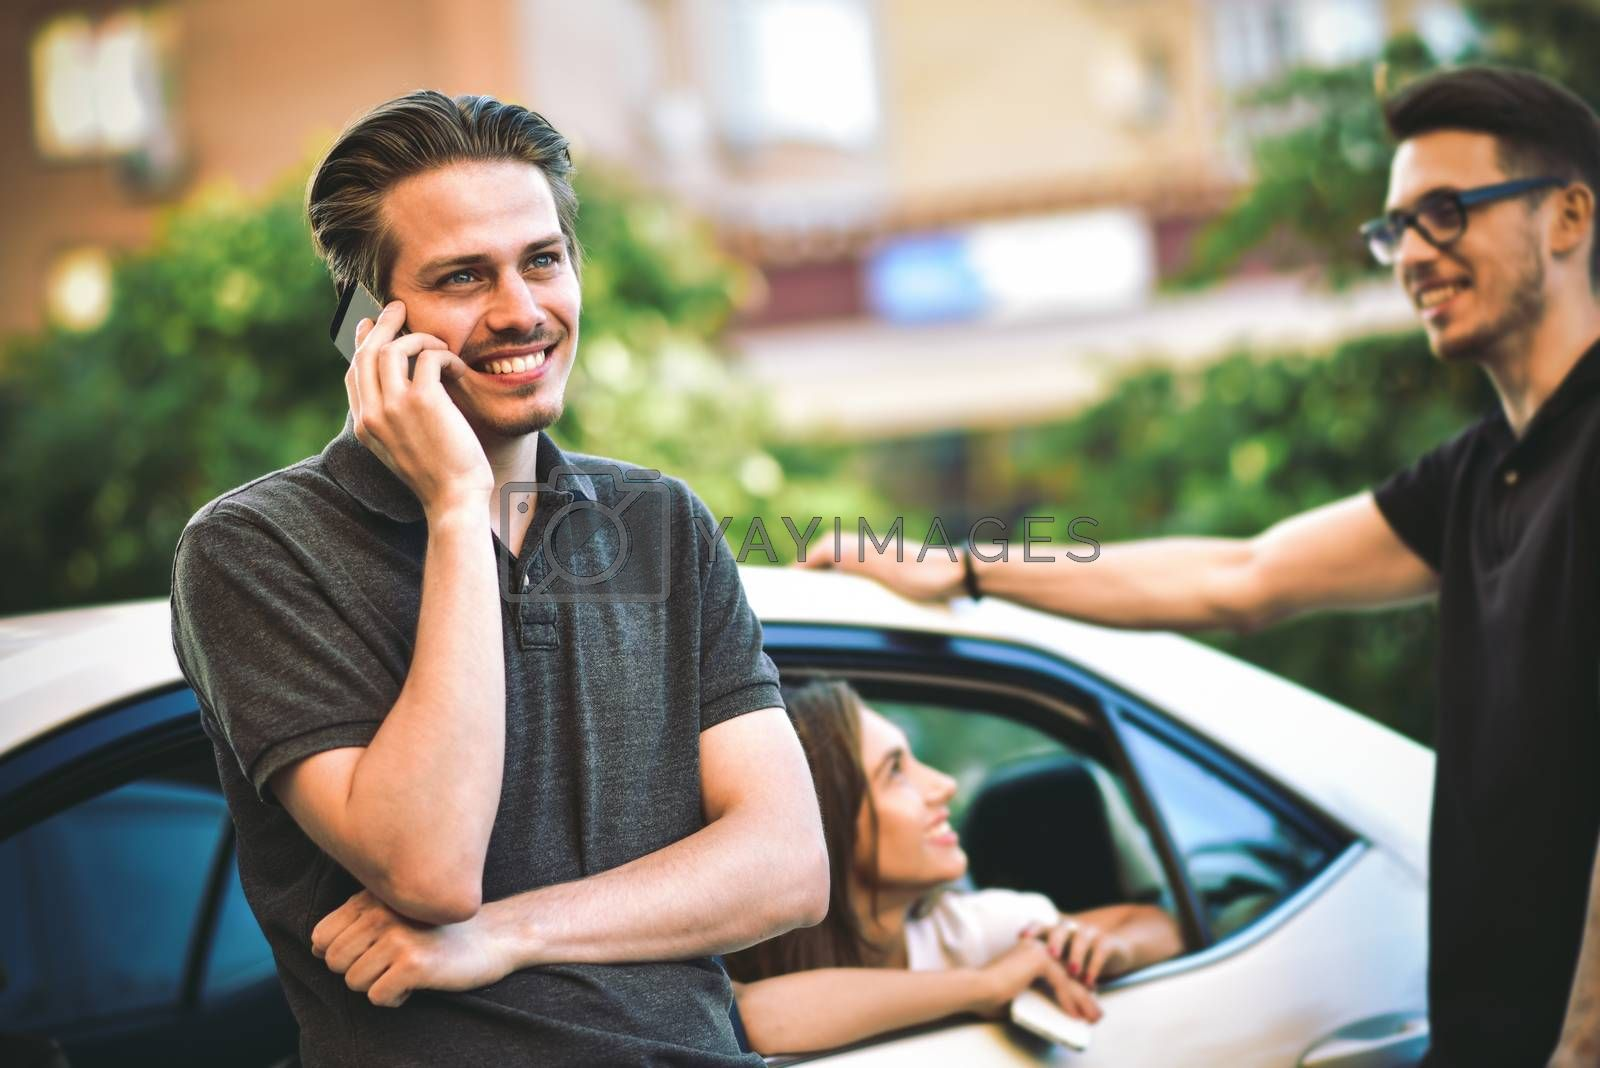 Handsome young caucasian man talking on the mobile phone and smiling while standing near the car with his friends chatting in the background.